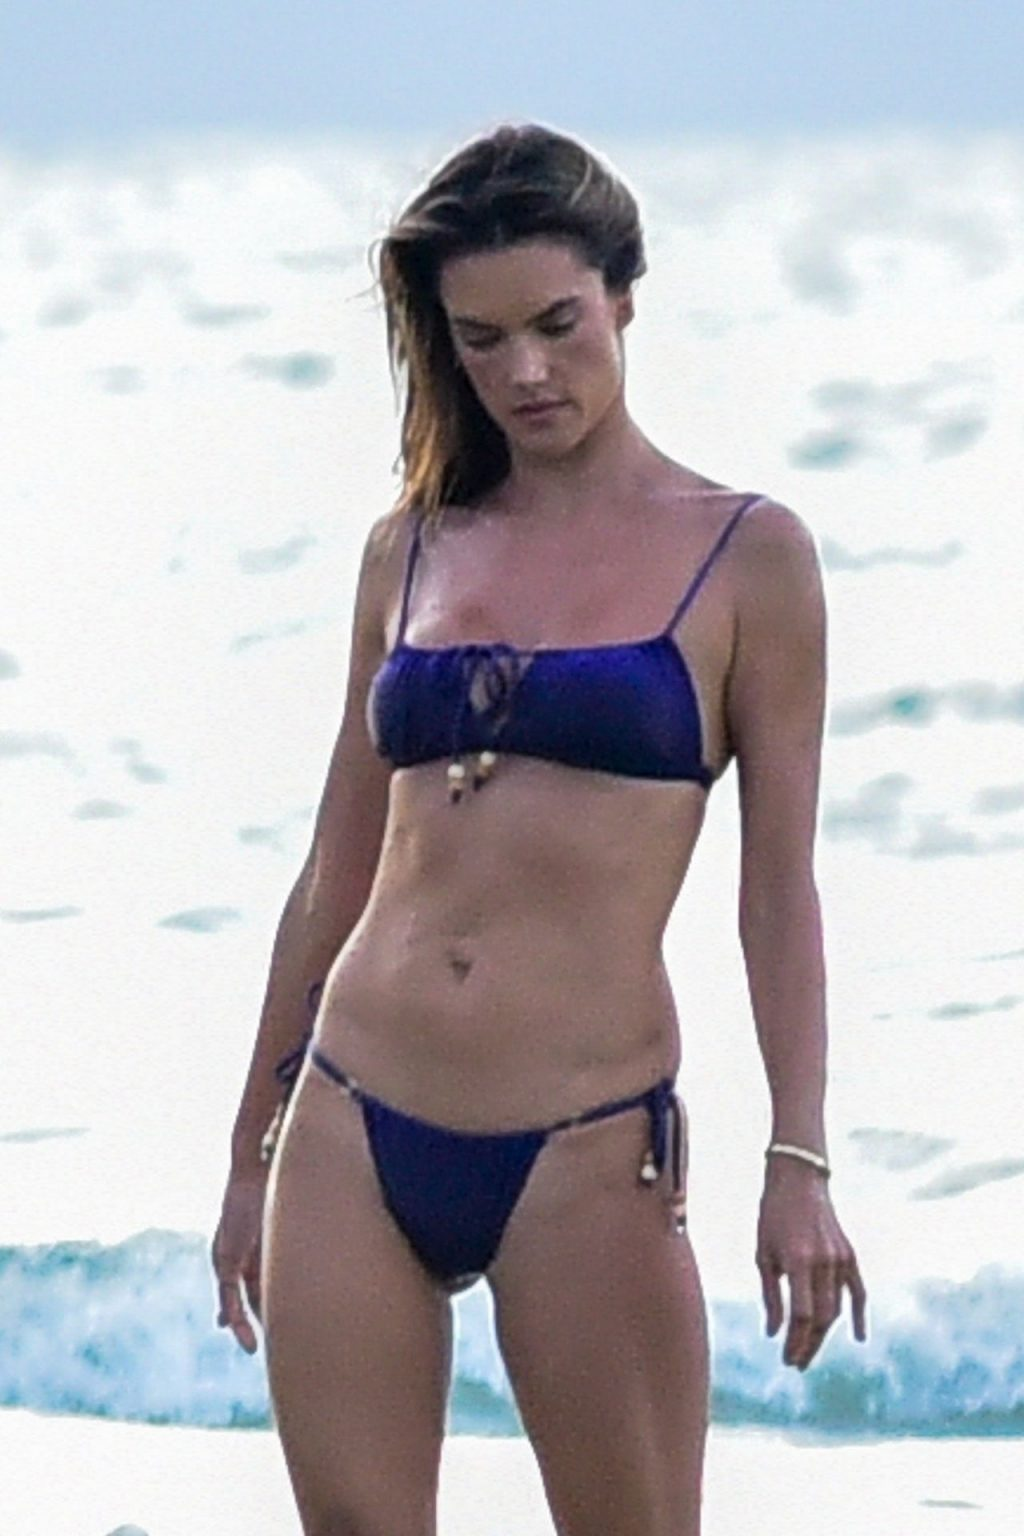 Alessandra Ambrosio Poses in a Photoshoot For Her New Collection (57 Photos)